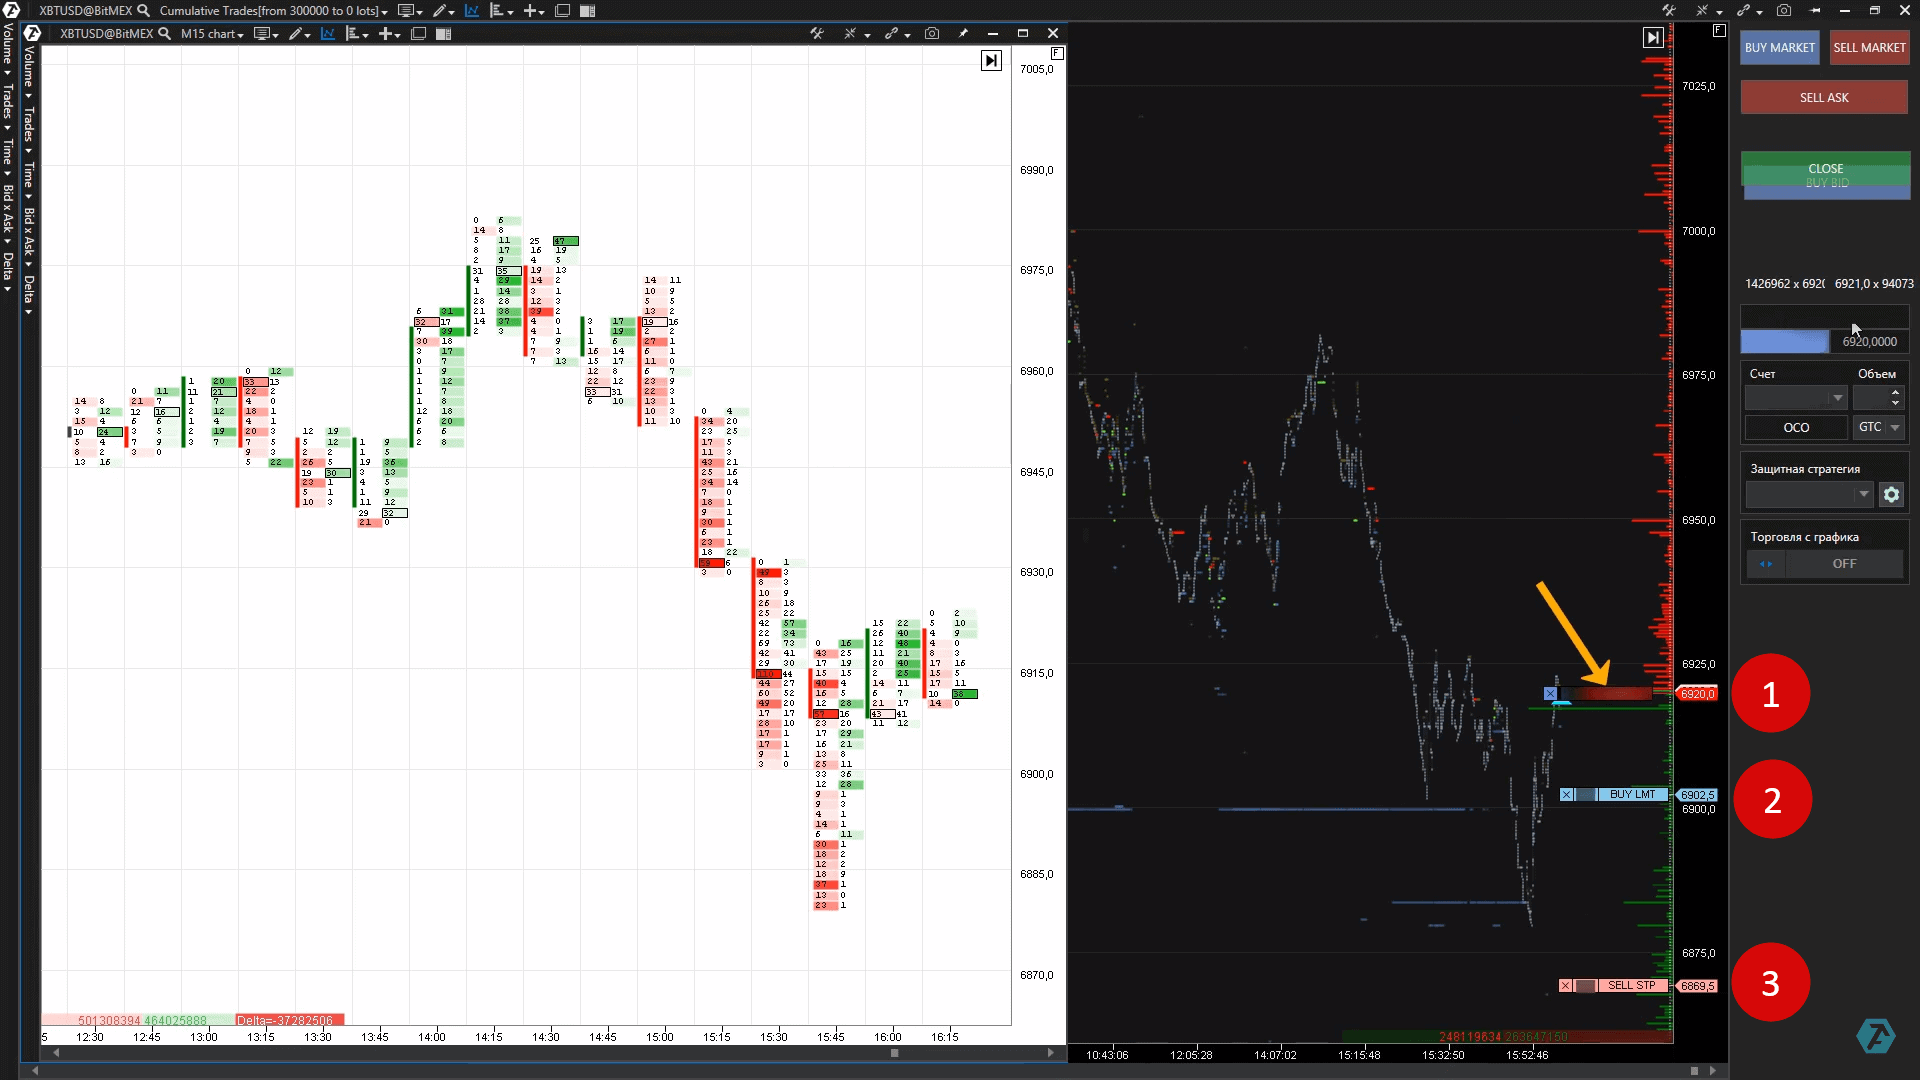 How to enter a buying trade